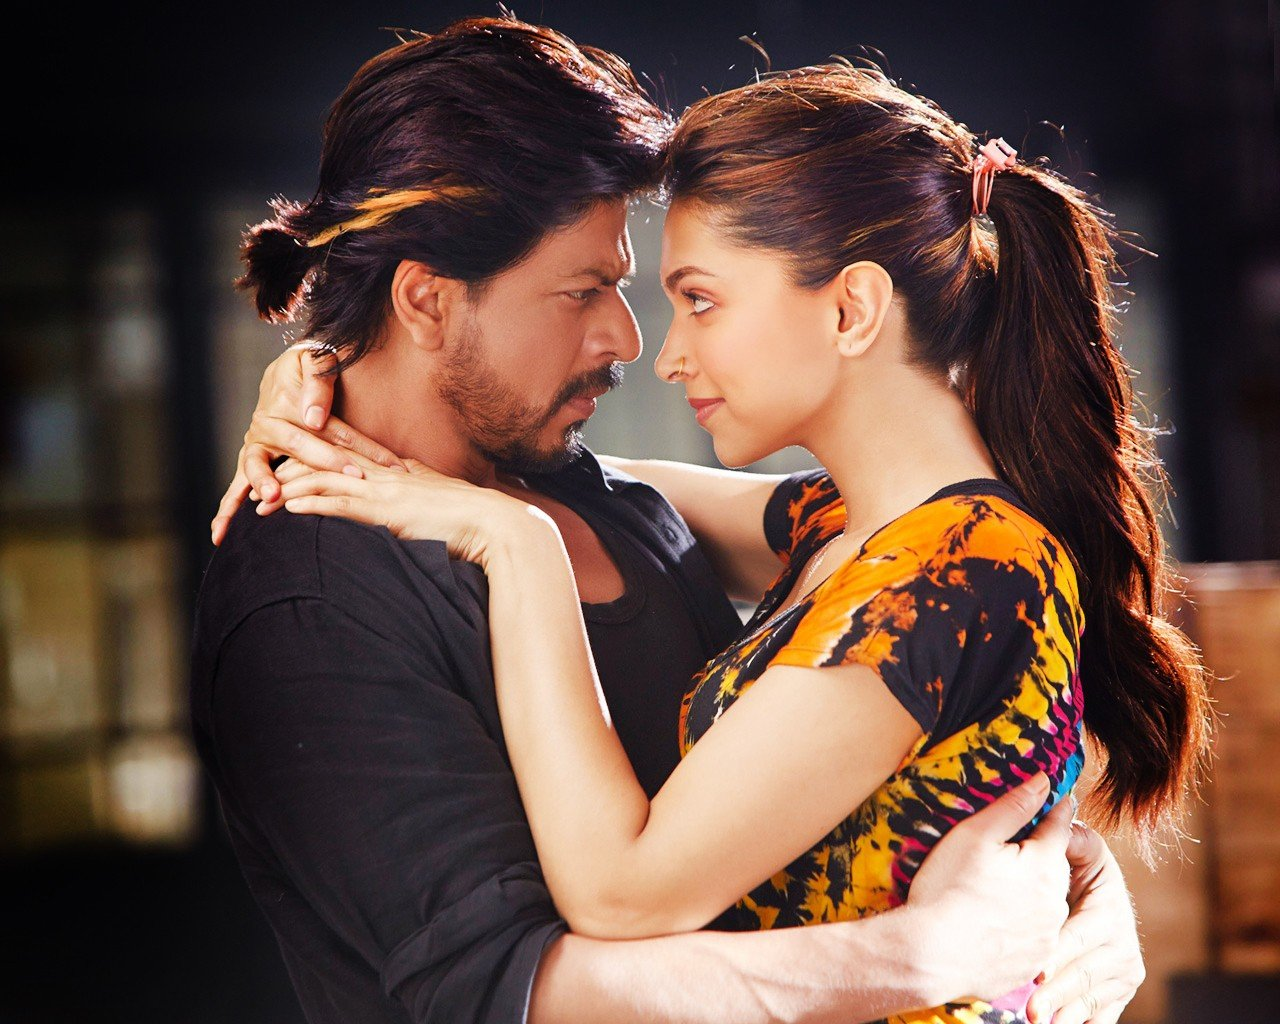 Shah rukh khan deepika padukone bollywood hd wallpapers desktop and mobile images photos - Pc wallpaper hd bollywood ...